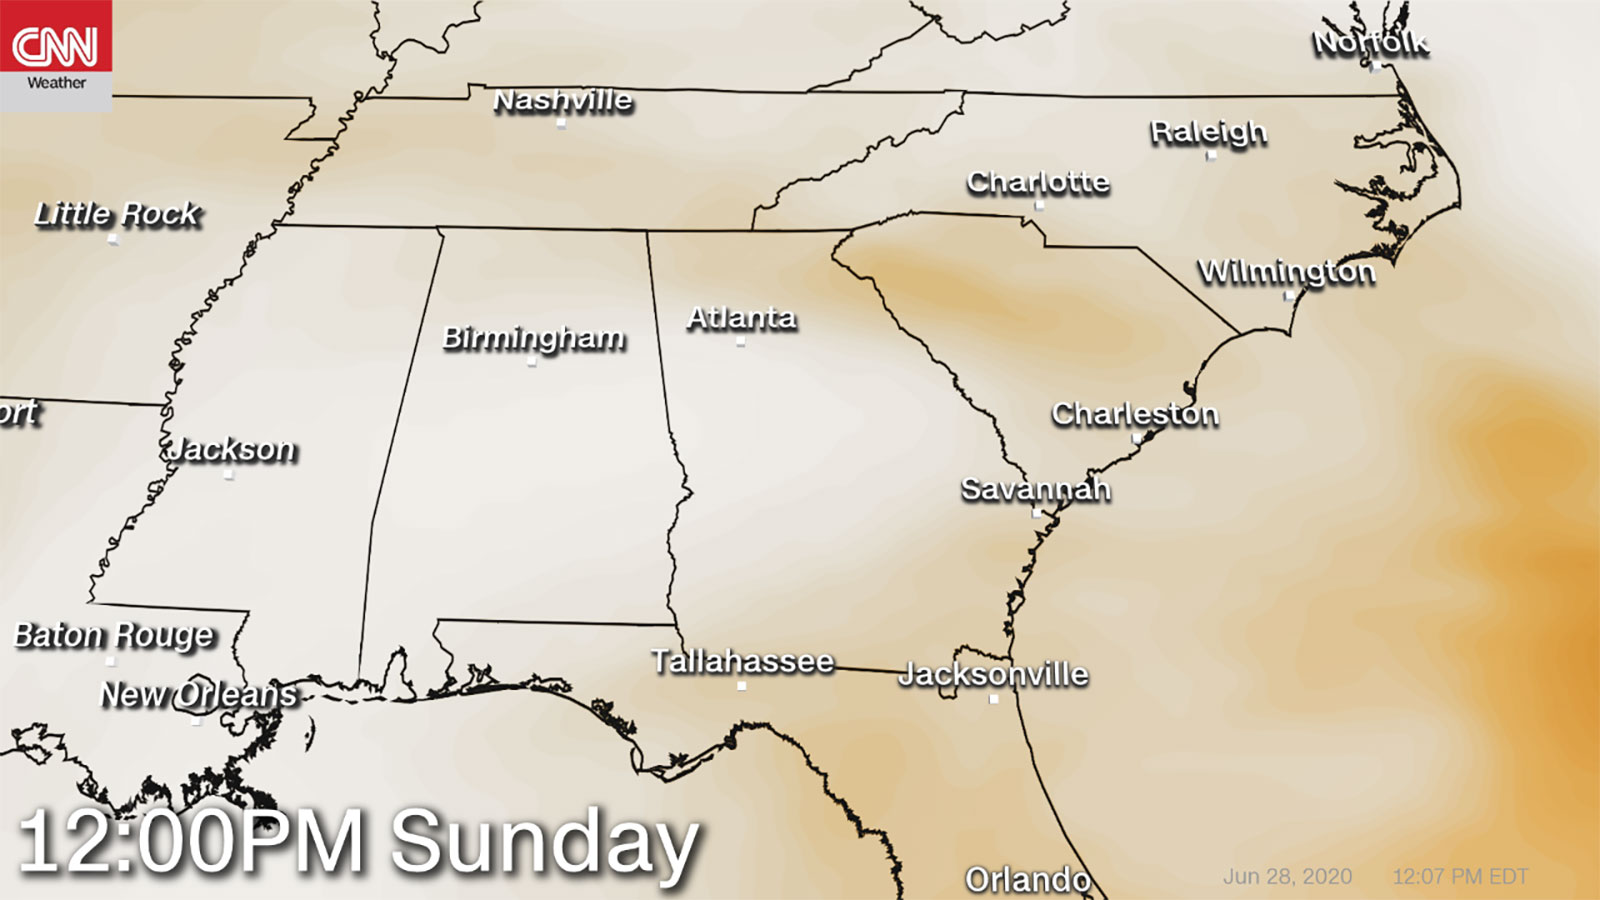 Georgia officials warned this weekend about potential health problems related to the Saharan dust cloud hovering over the state.